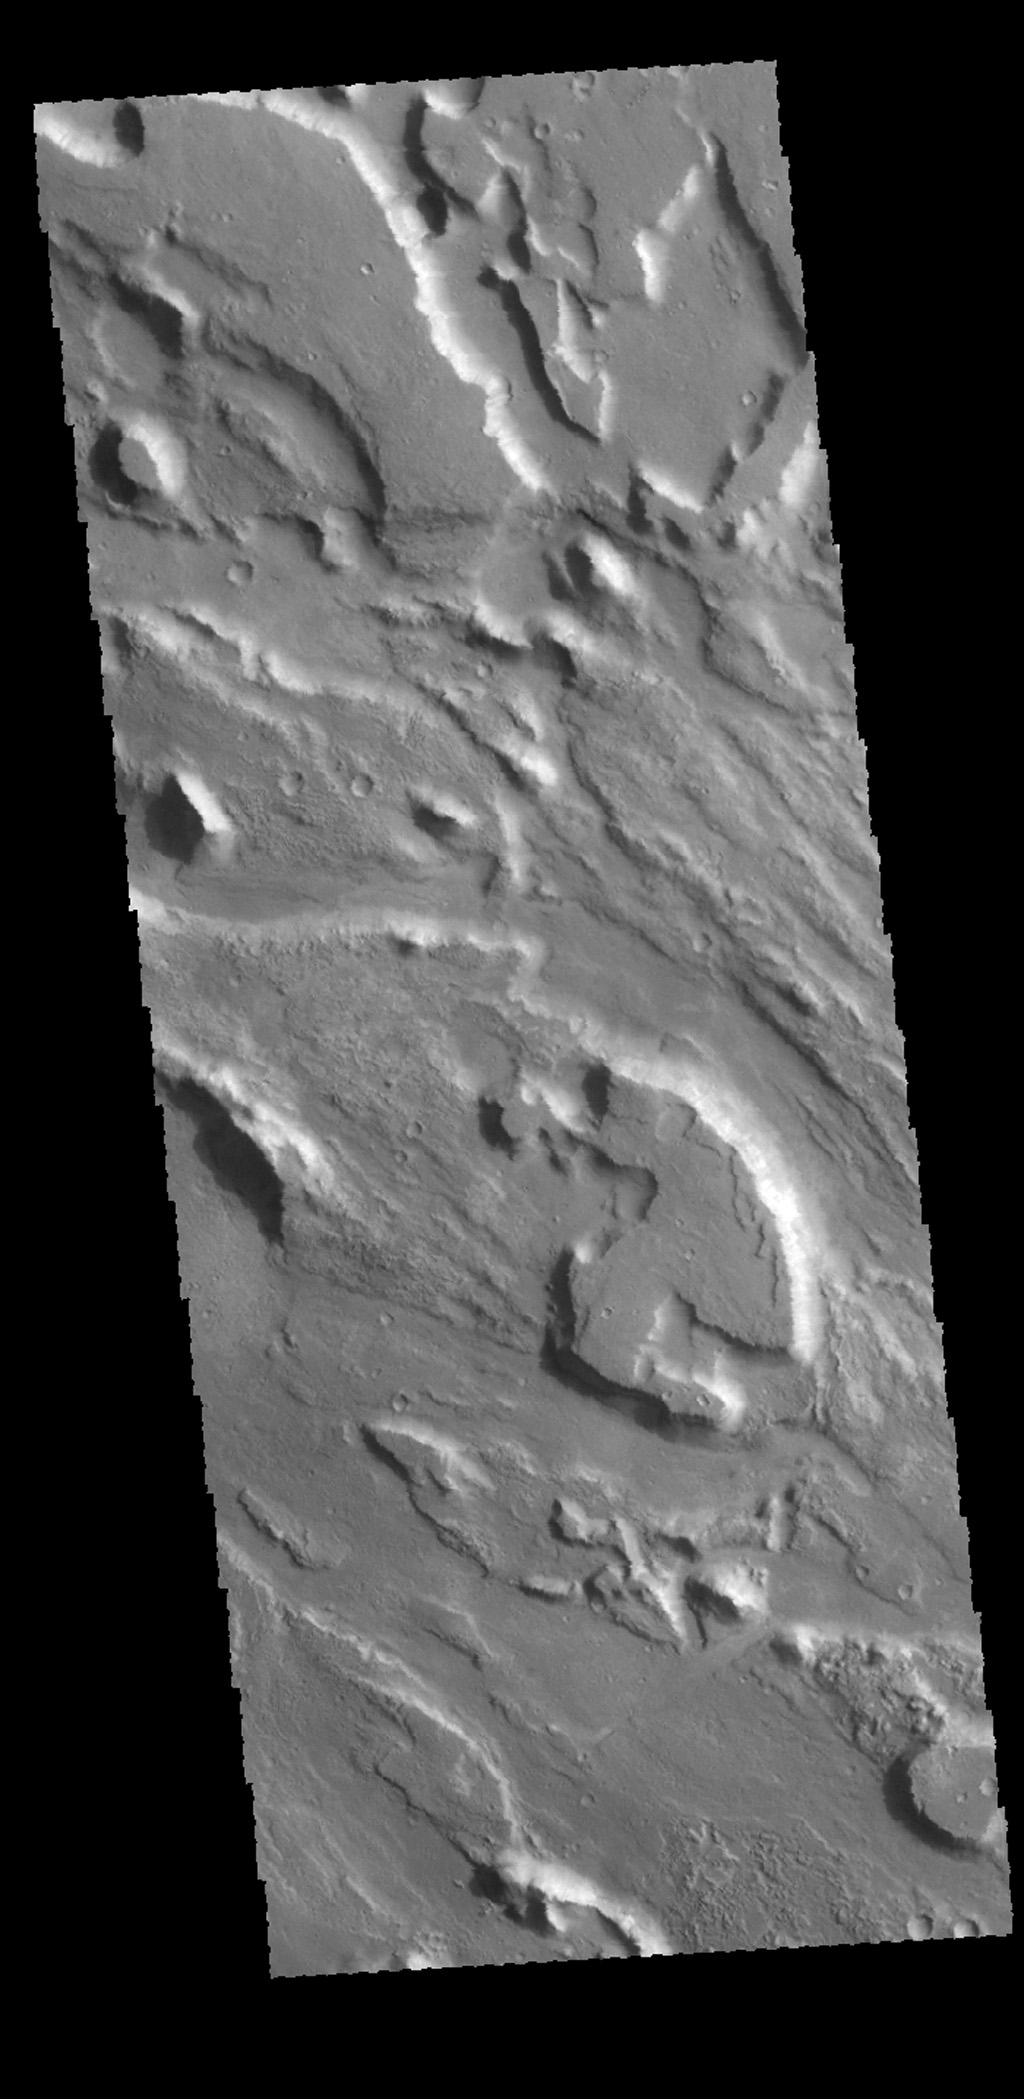 Space Images | Ares Vallis